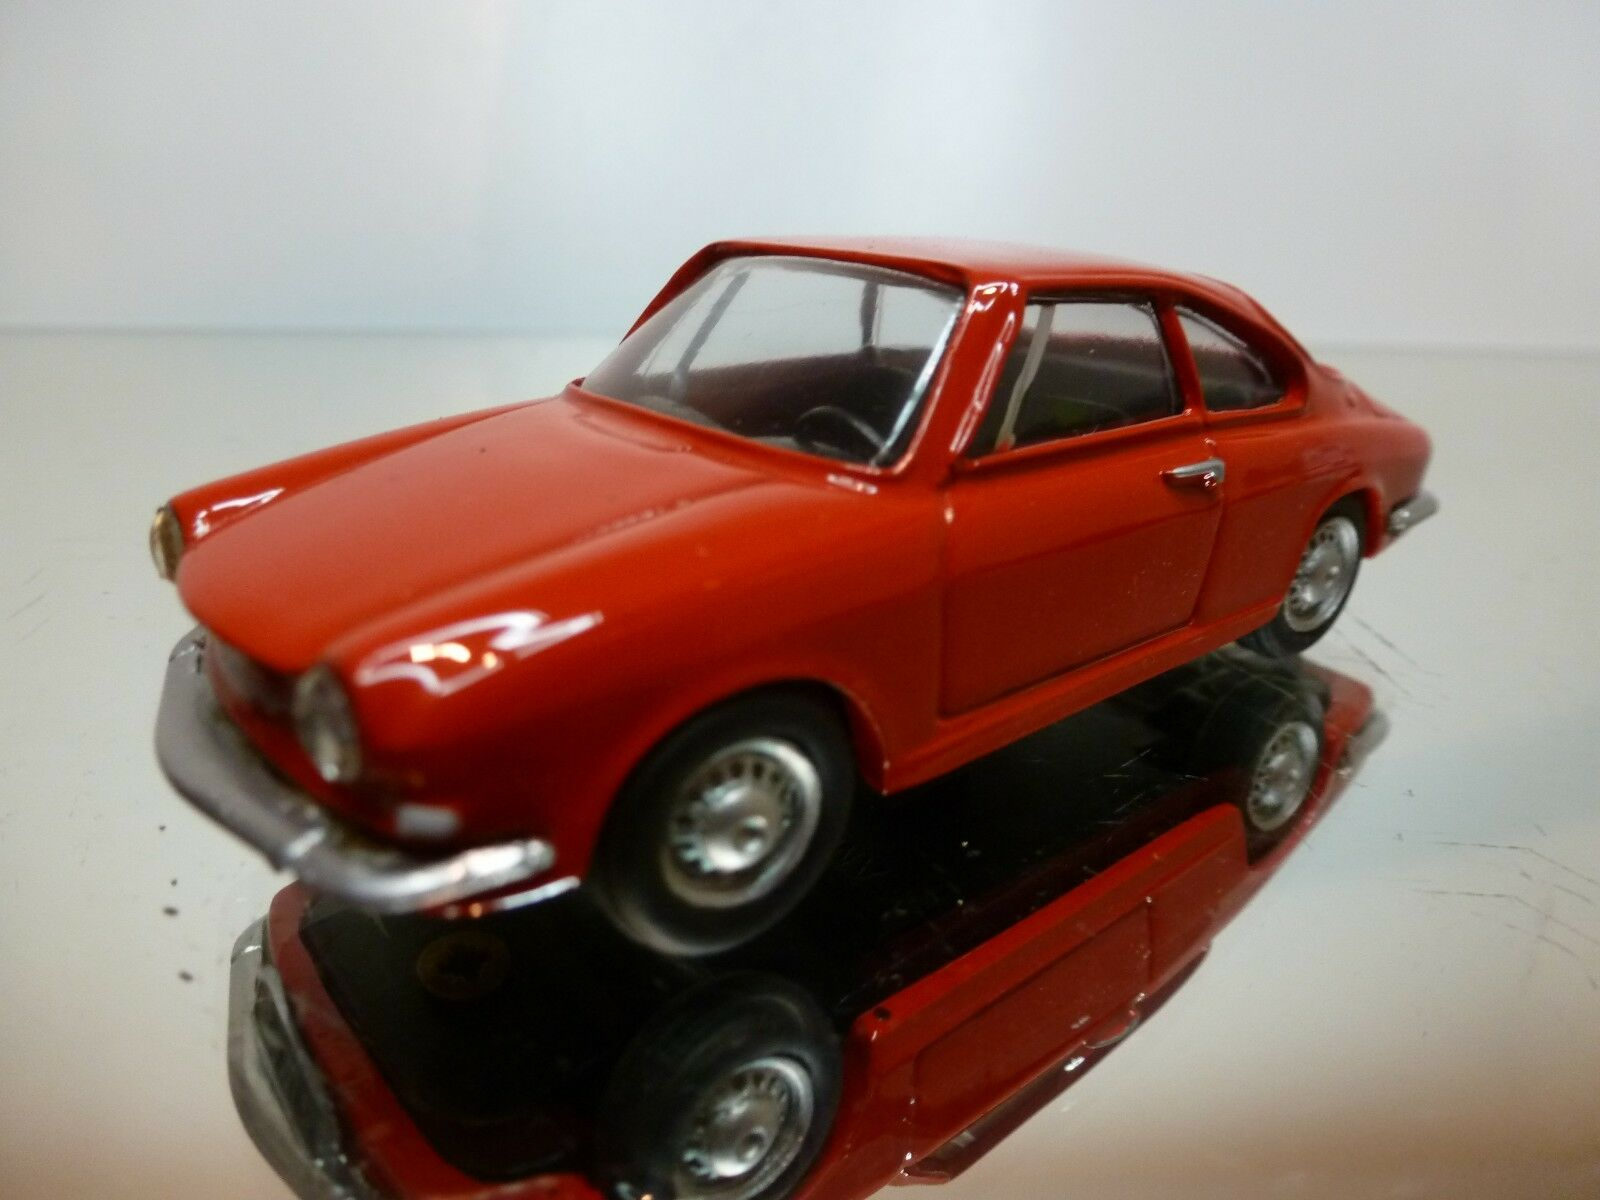 PANORAMA SIMCA 1000 COUPE 1962 - rojo 1 43 - EXCELLENT CONDITION - 9